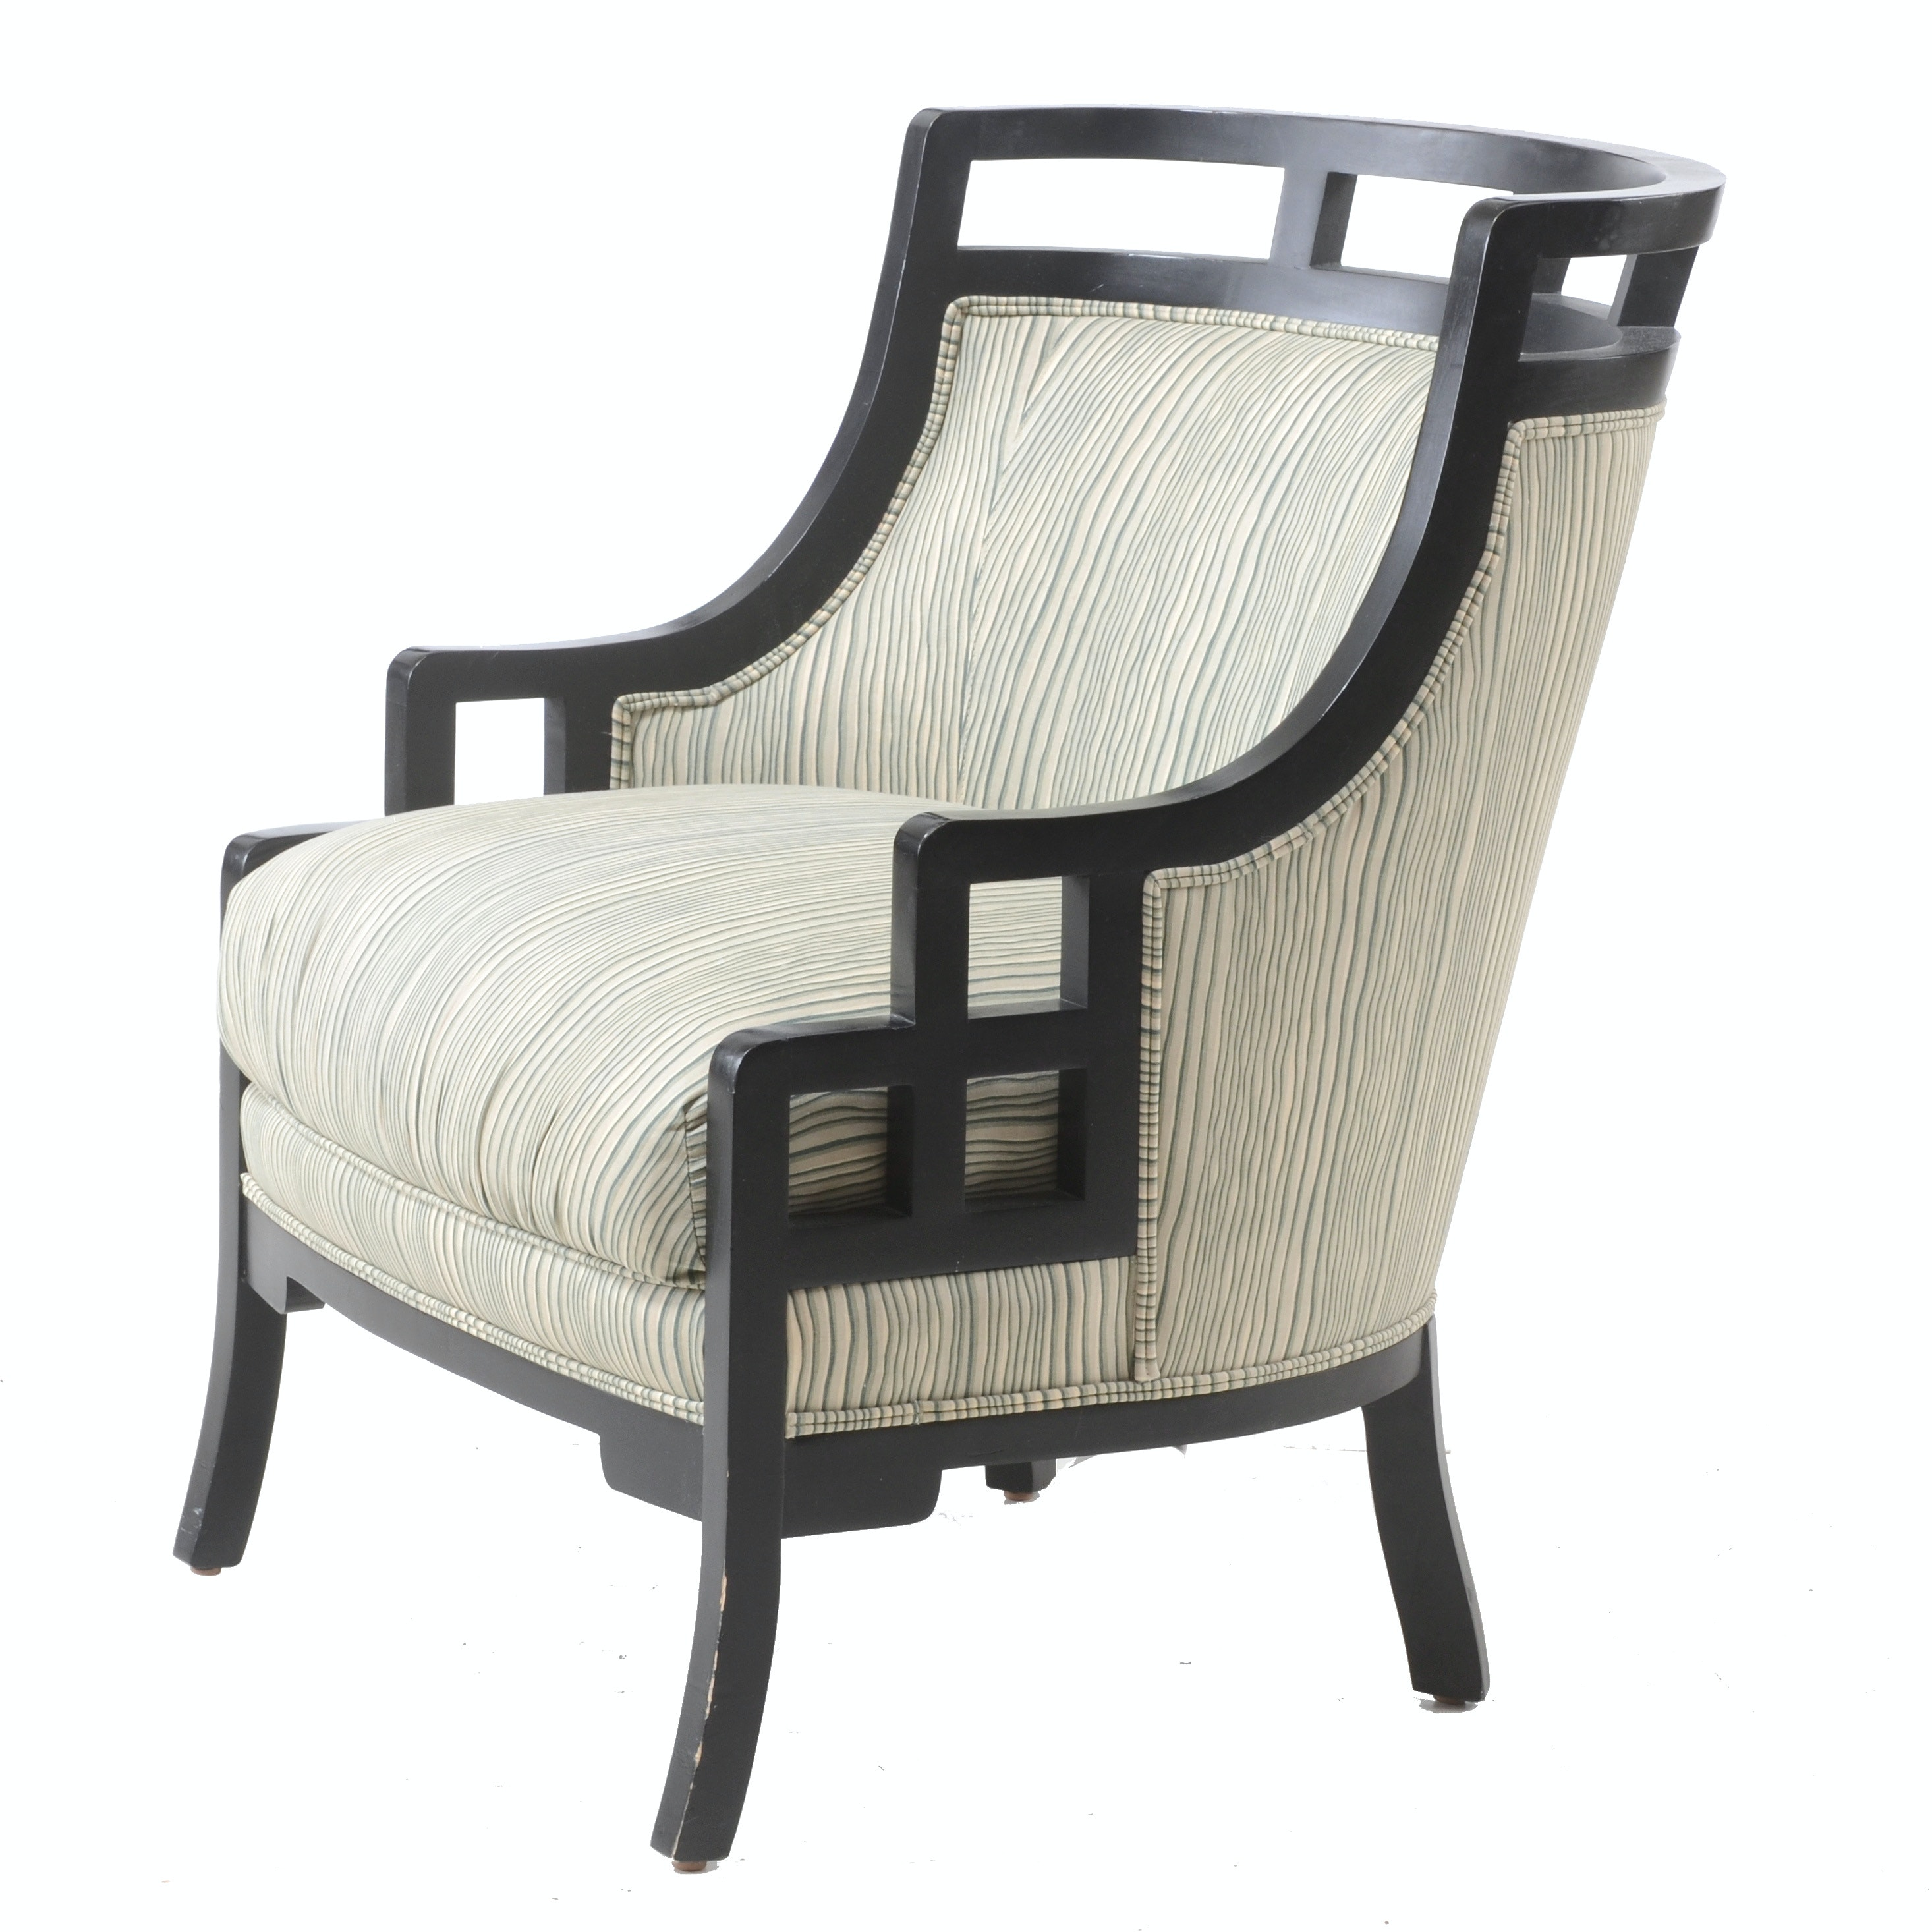 Modernist Arm Chair by Century Furniture